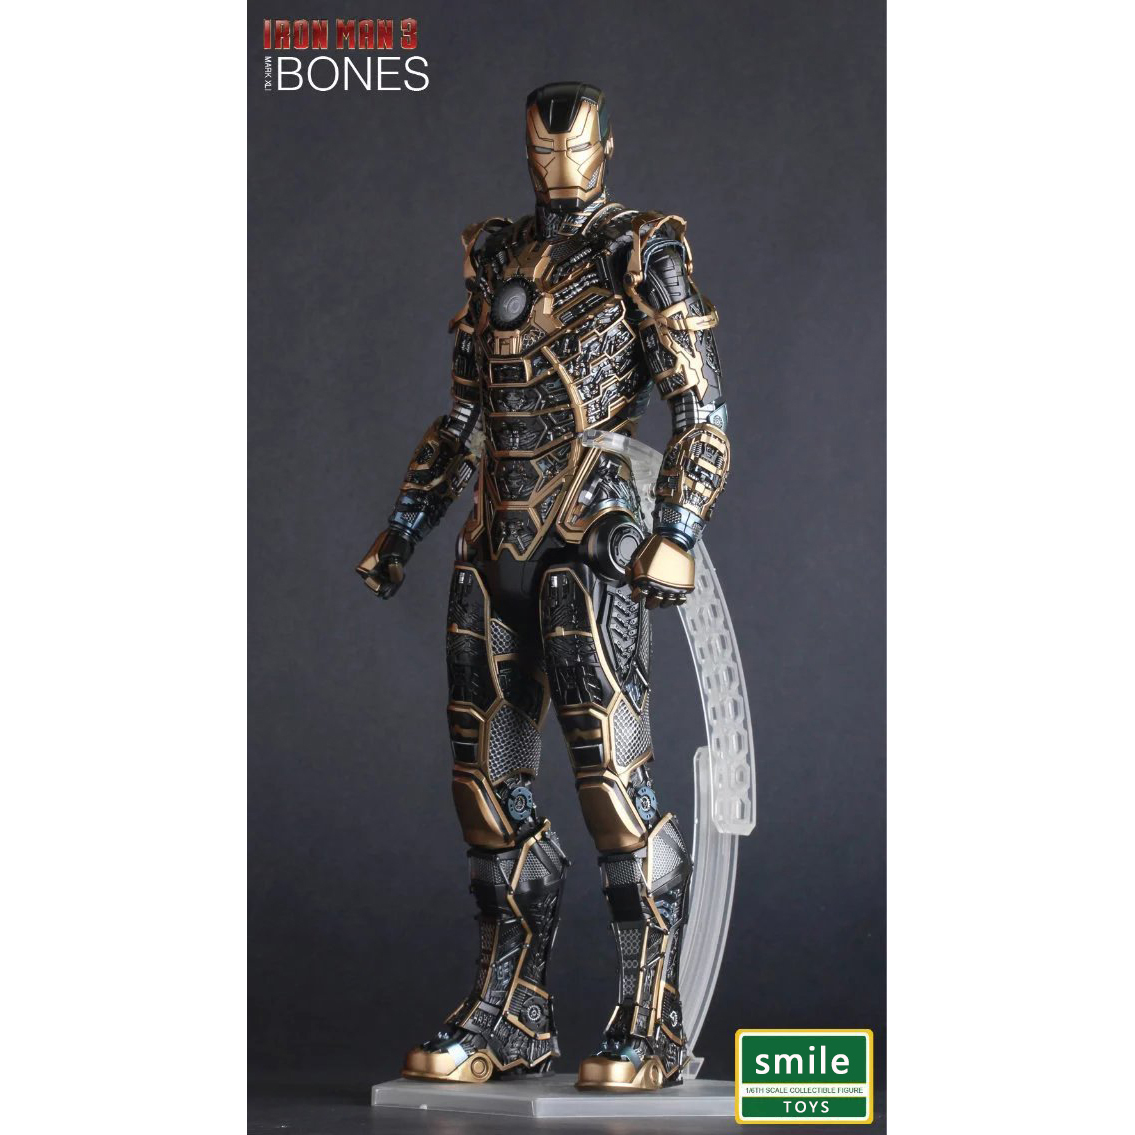 XINDUPLAN Marvel Shield America Anime Avengers Civil War iron Man MK4 BONES Action Figure Toys 1PCS 30cm Collection Model 0348 xinduplan marvel shield iron man avengers age of ultron mk45 limited edition human face movable action figure 30cm model 0778